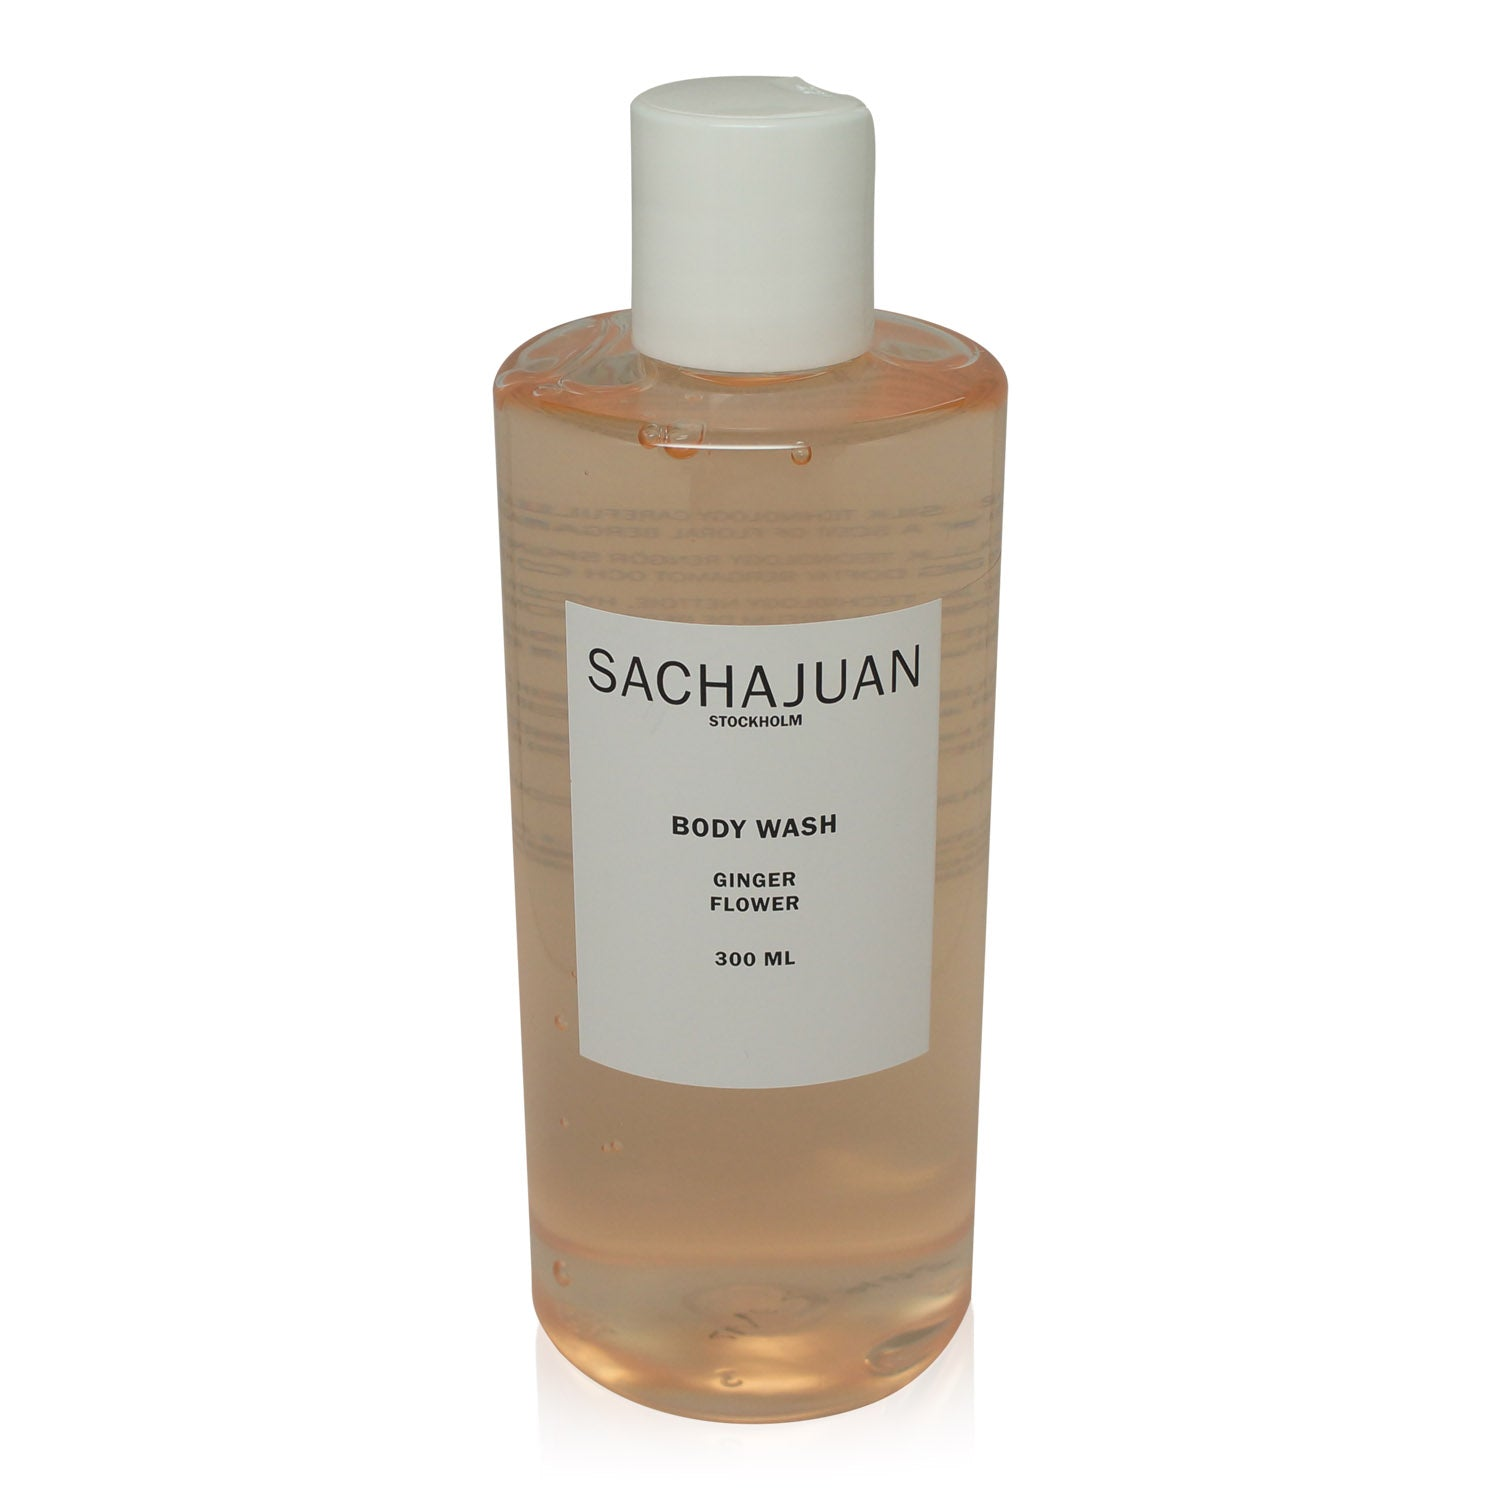 SACHAJUAN ~ BODY WASH GINGER FLOWER ~ 300 ML